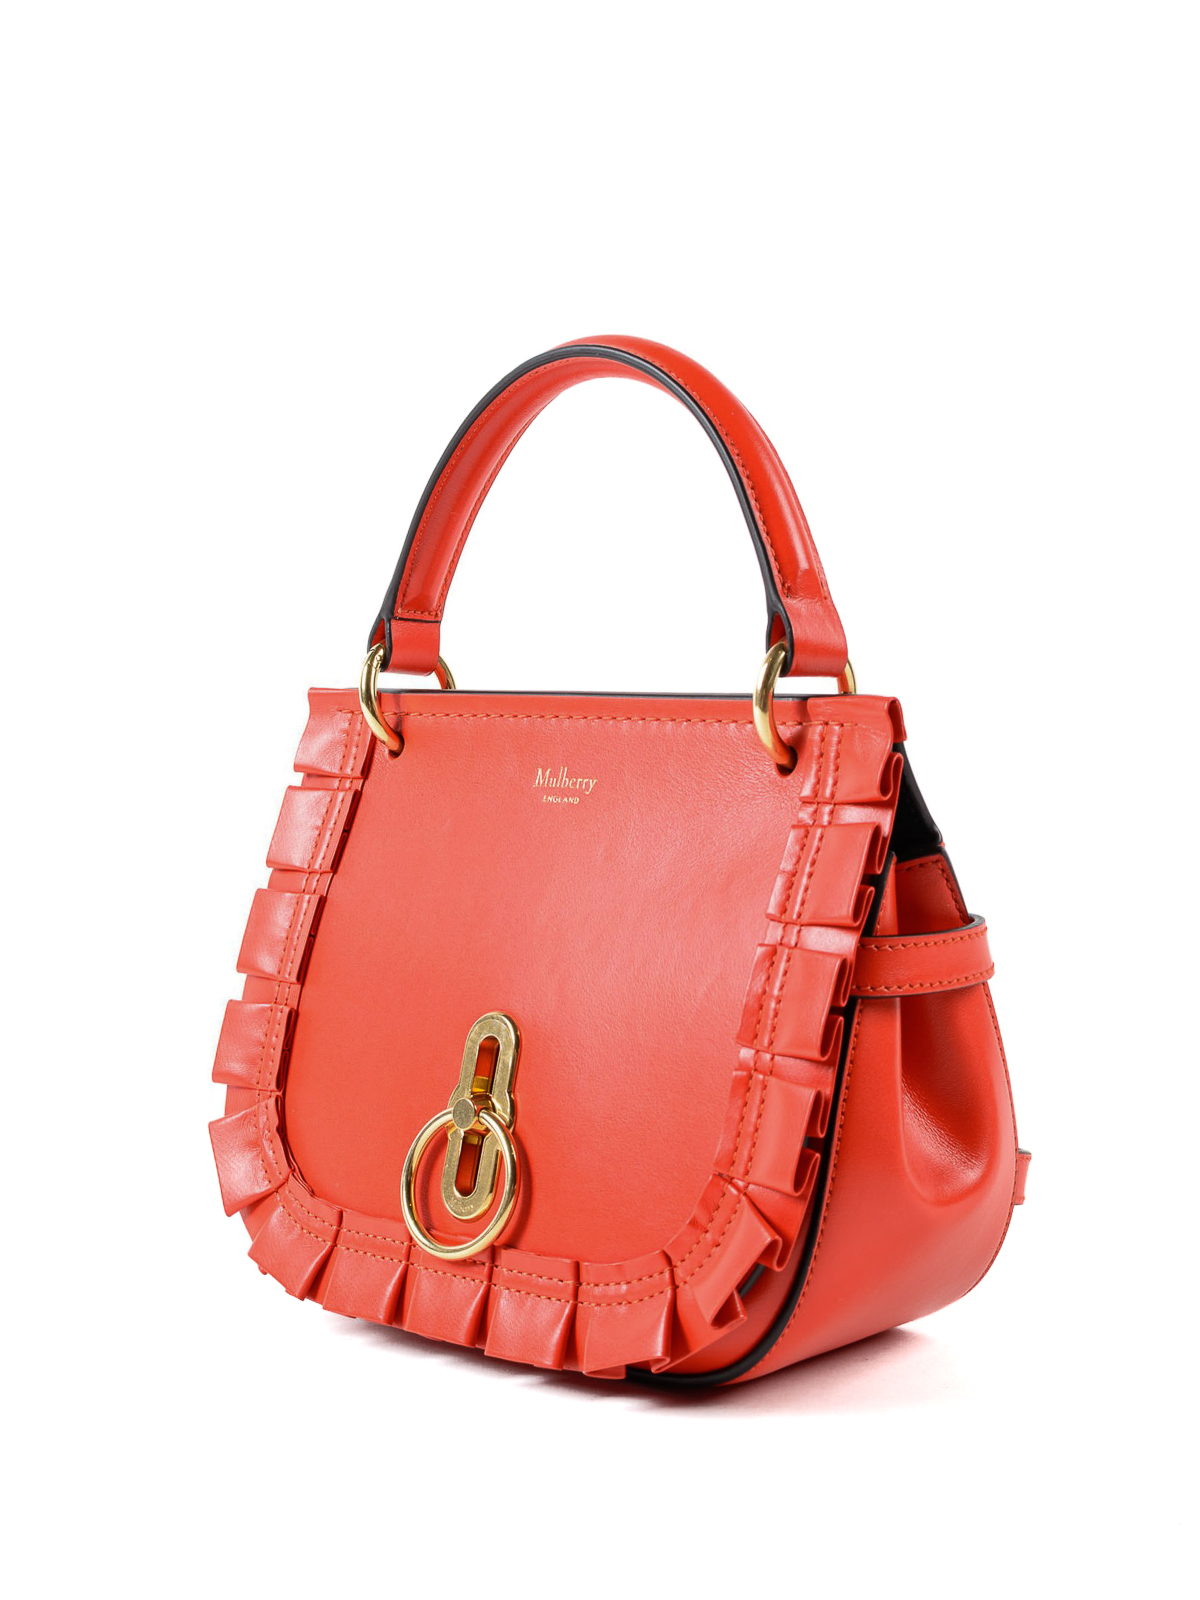 66ce559b4e ... clearance mulberry cross body bags online amberley red leather small  saddle bag 0619e 83596 ...